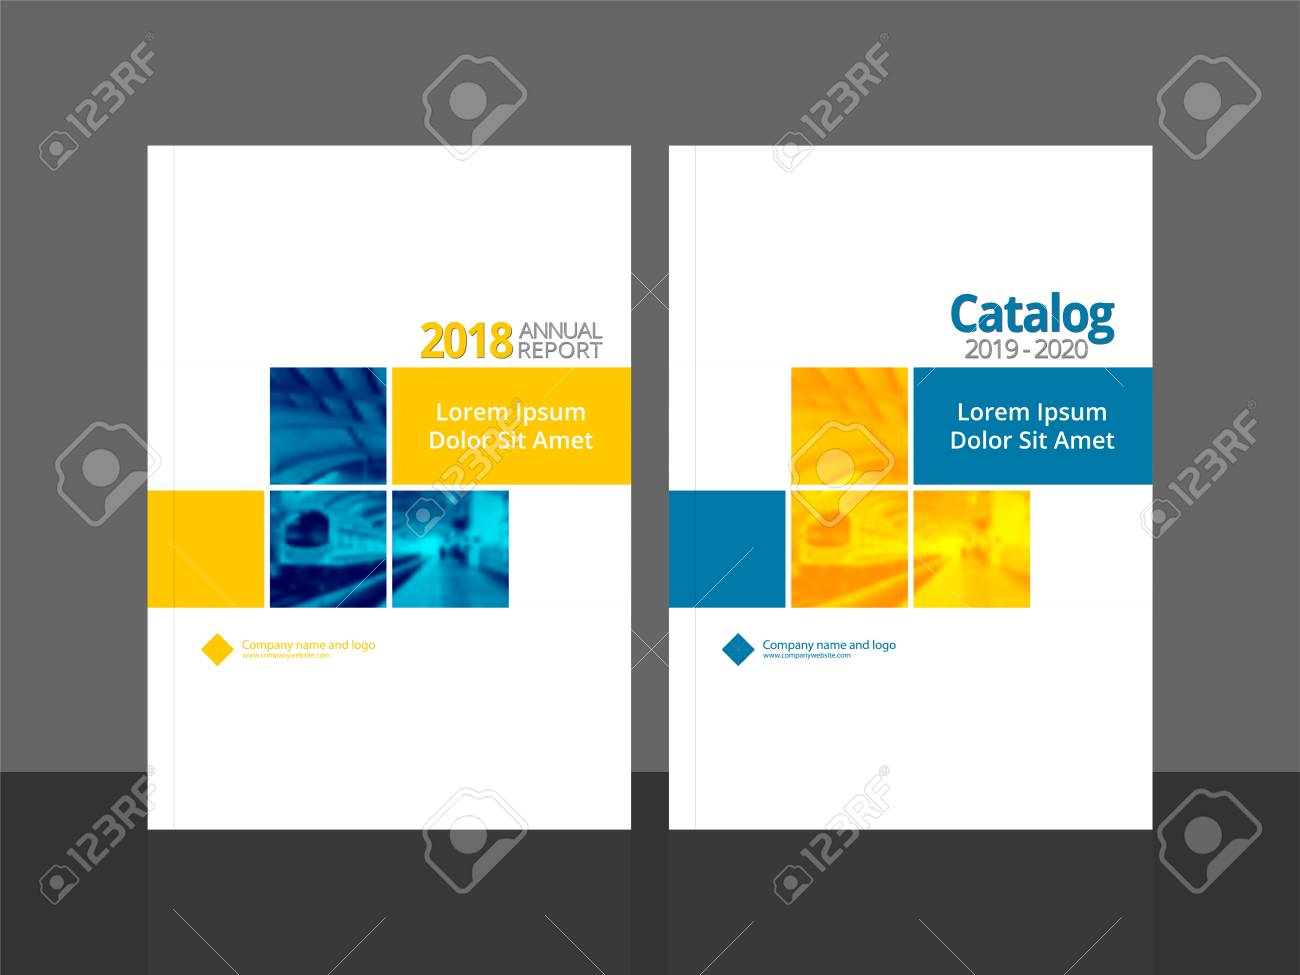 Corporate cover design for annual report and business catalog,